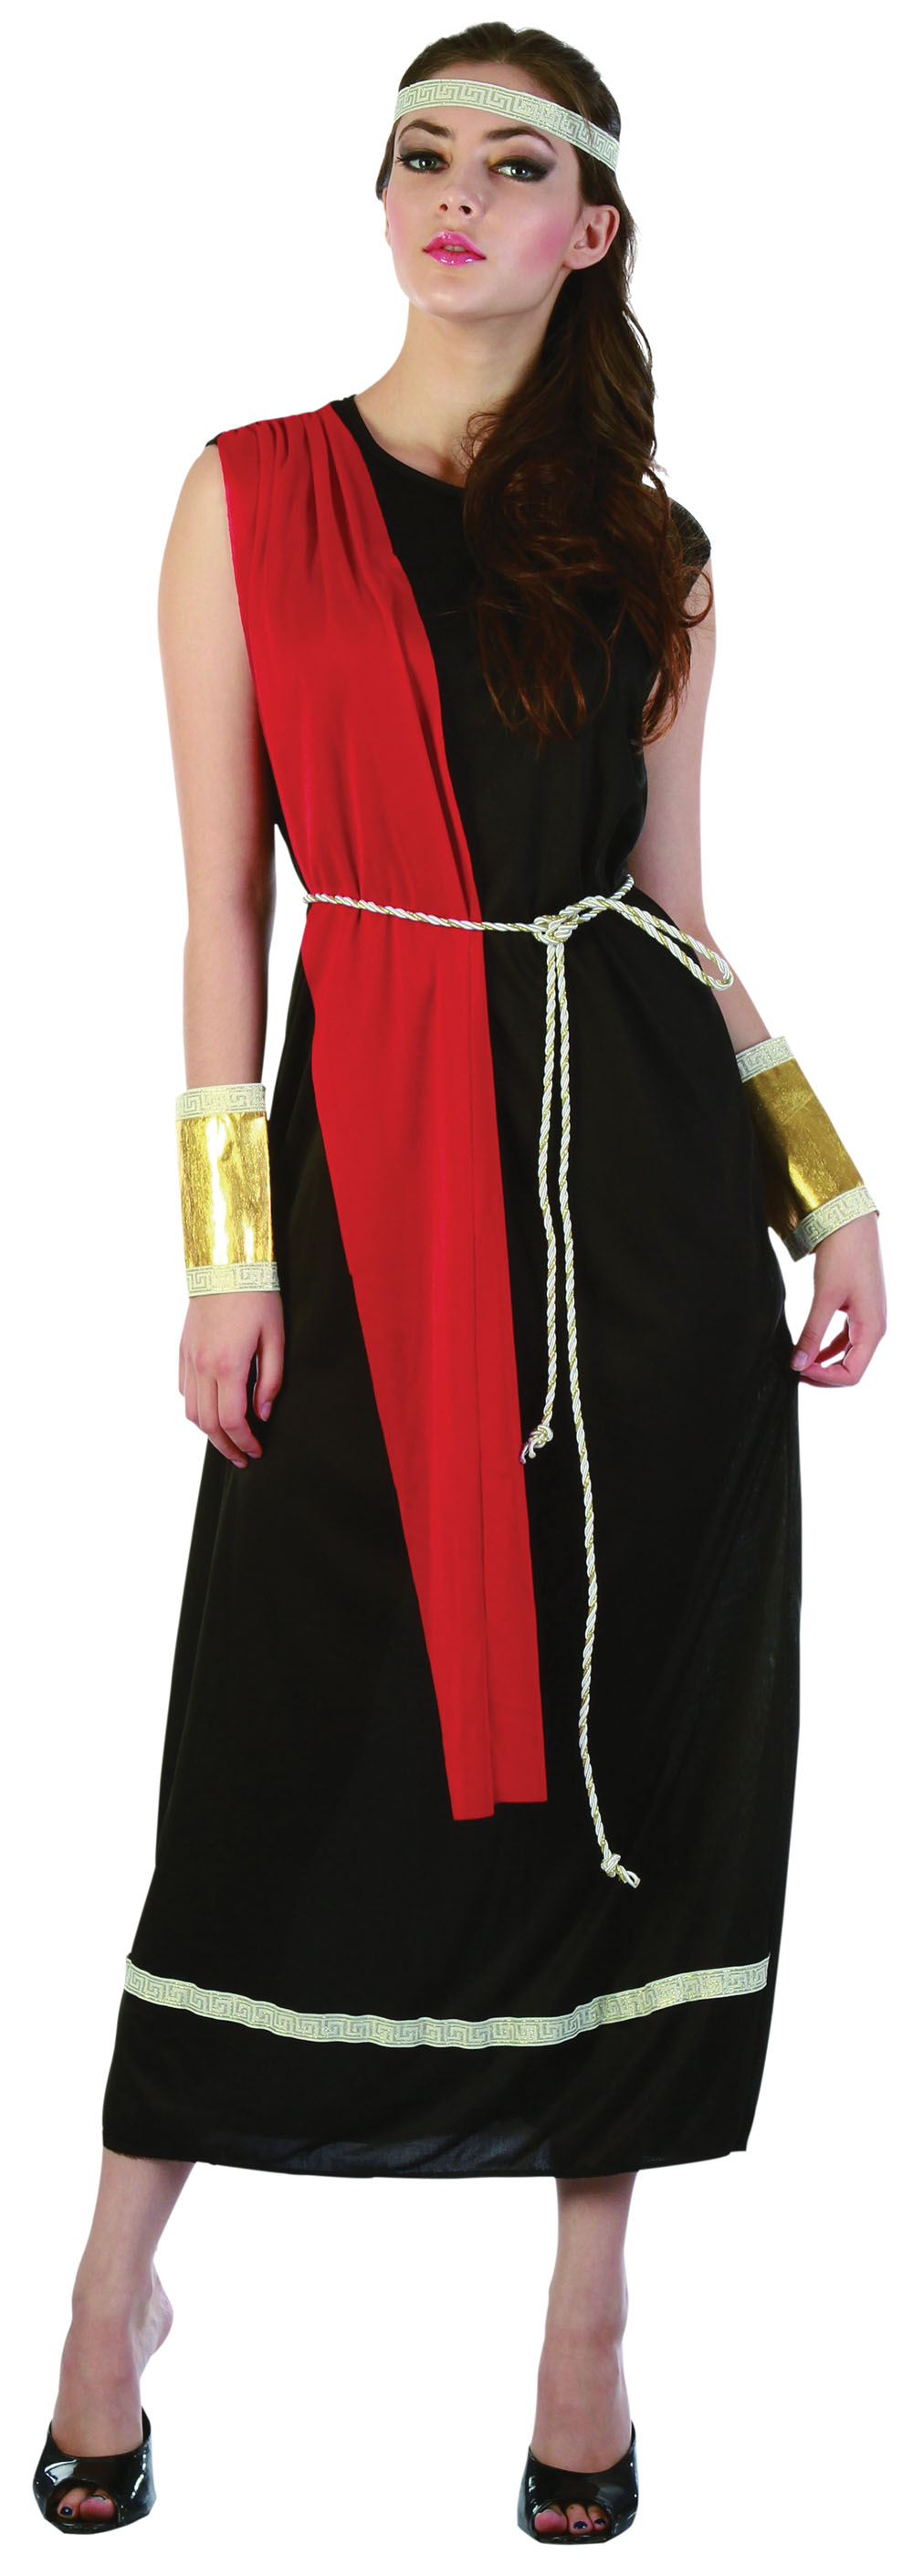 Ladies Black Roman Empress Toga Fancy Dress Party Costume Womens UK 10-14